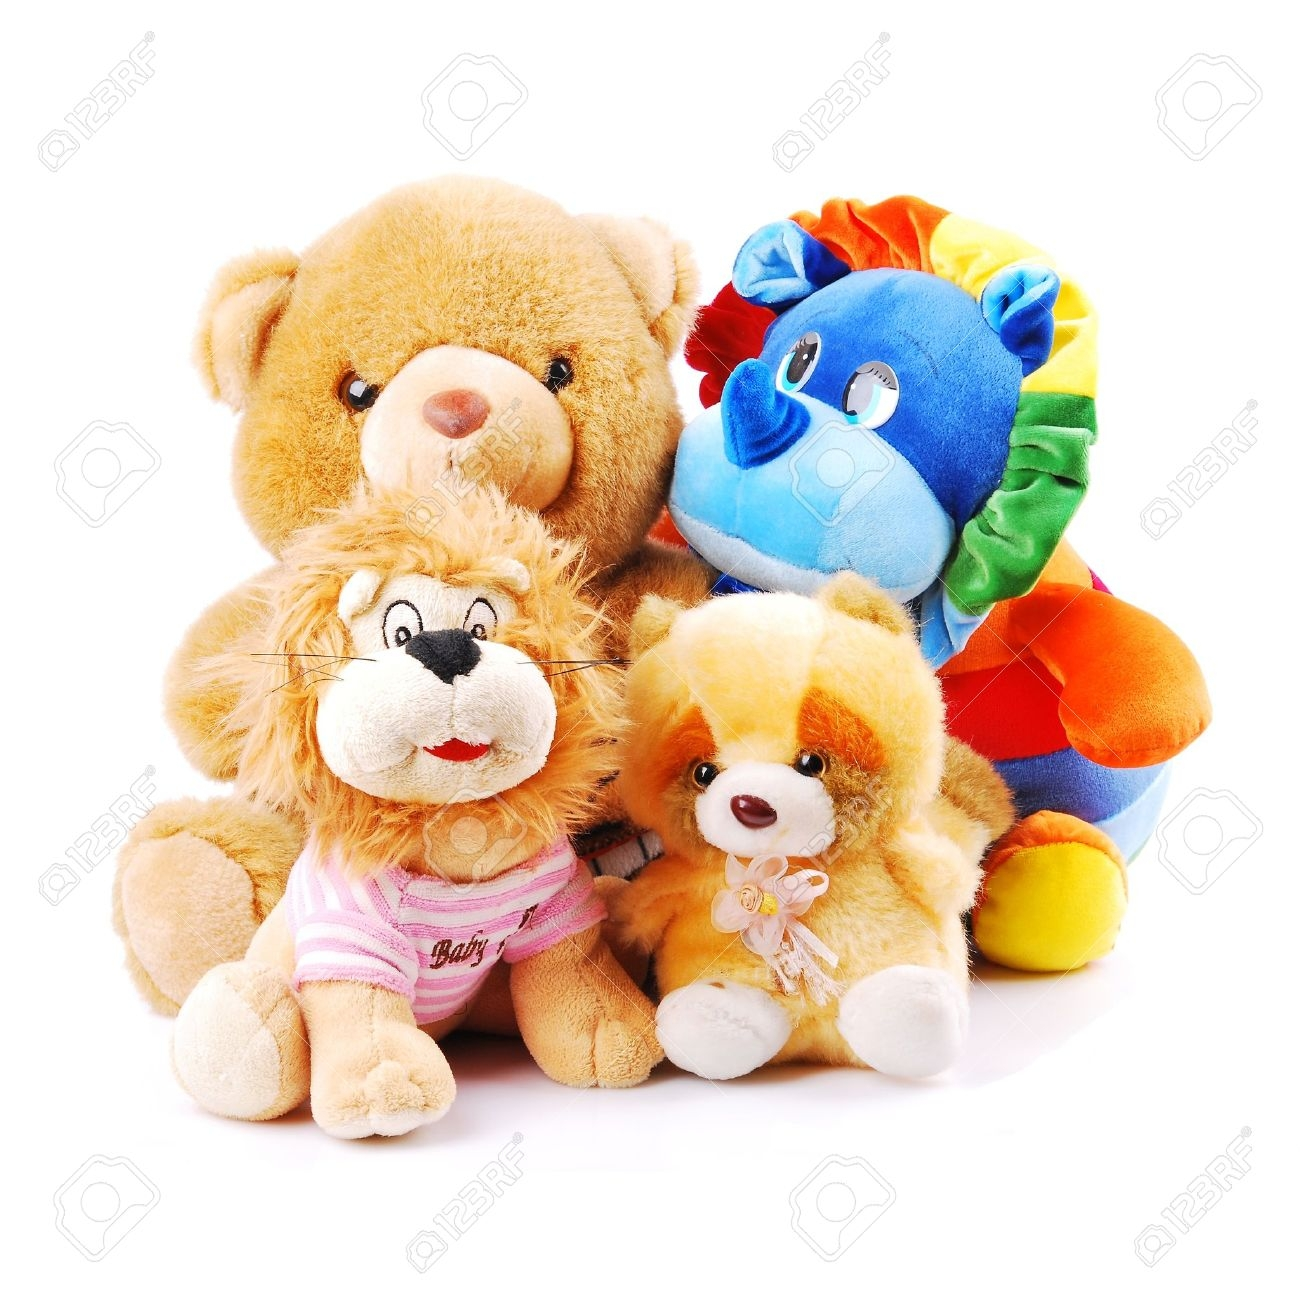 Plush toys clipart clipart freeuse stock 139 Best PELUCHES Y MUÑECOS Images On Pin #52849 ... clipart freeuse stock